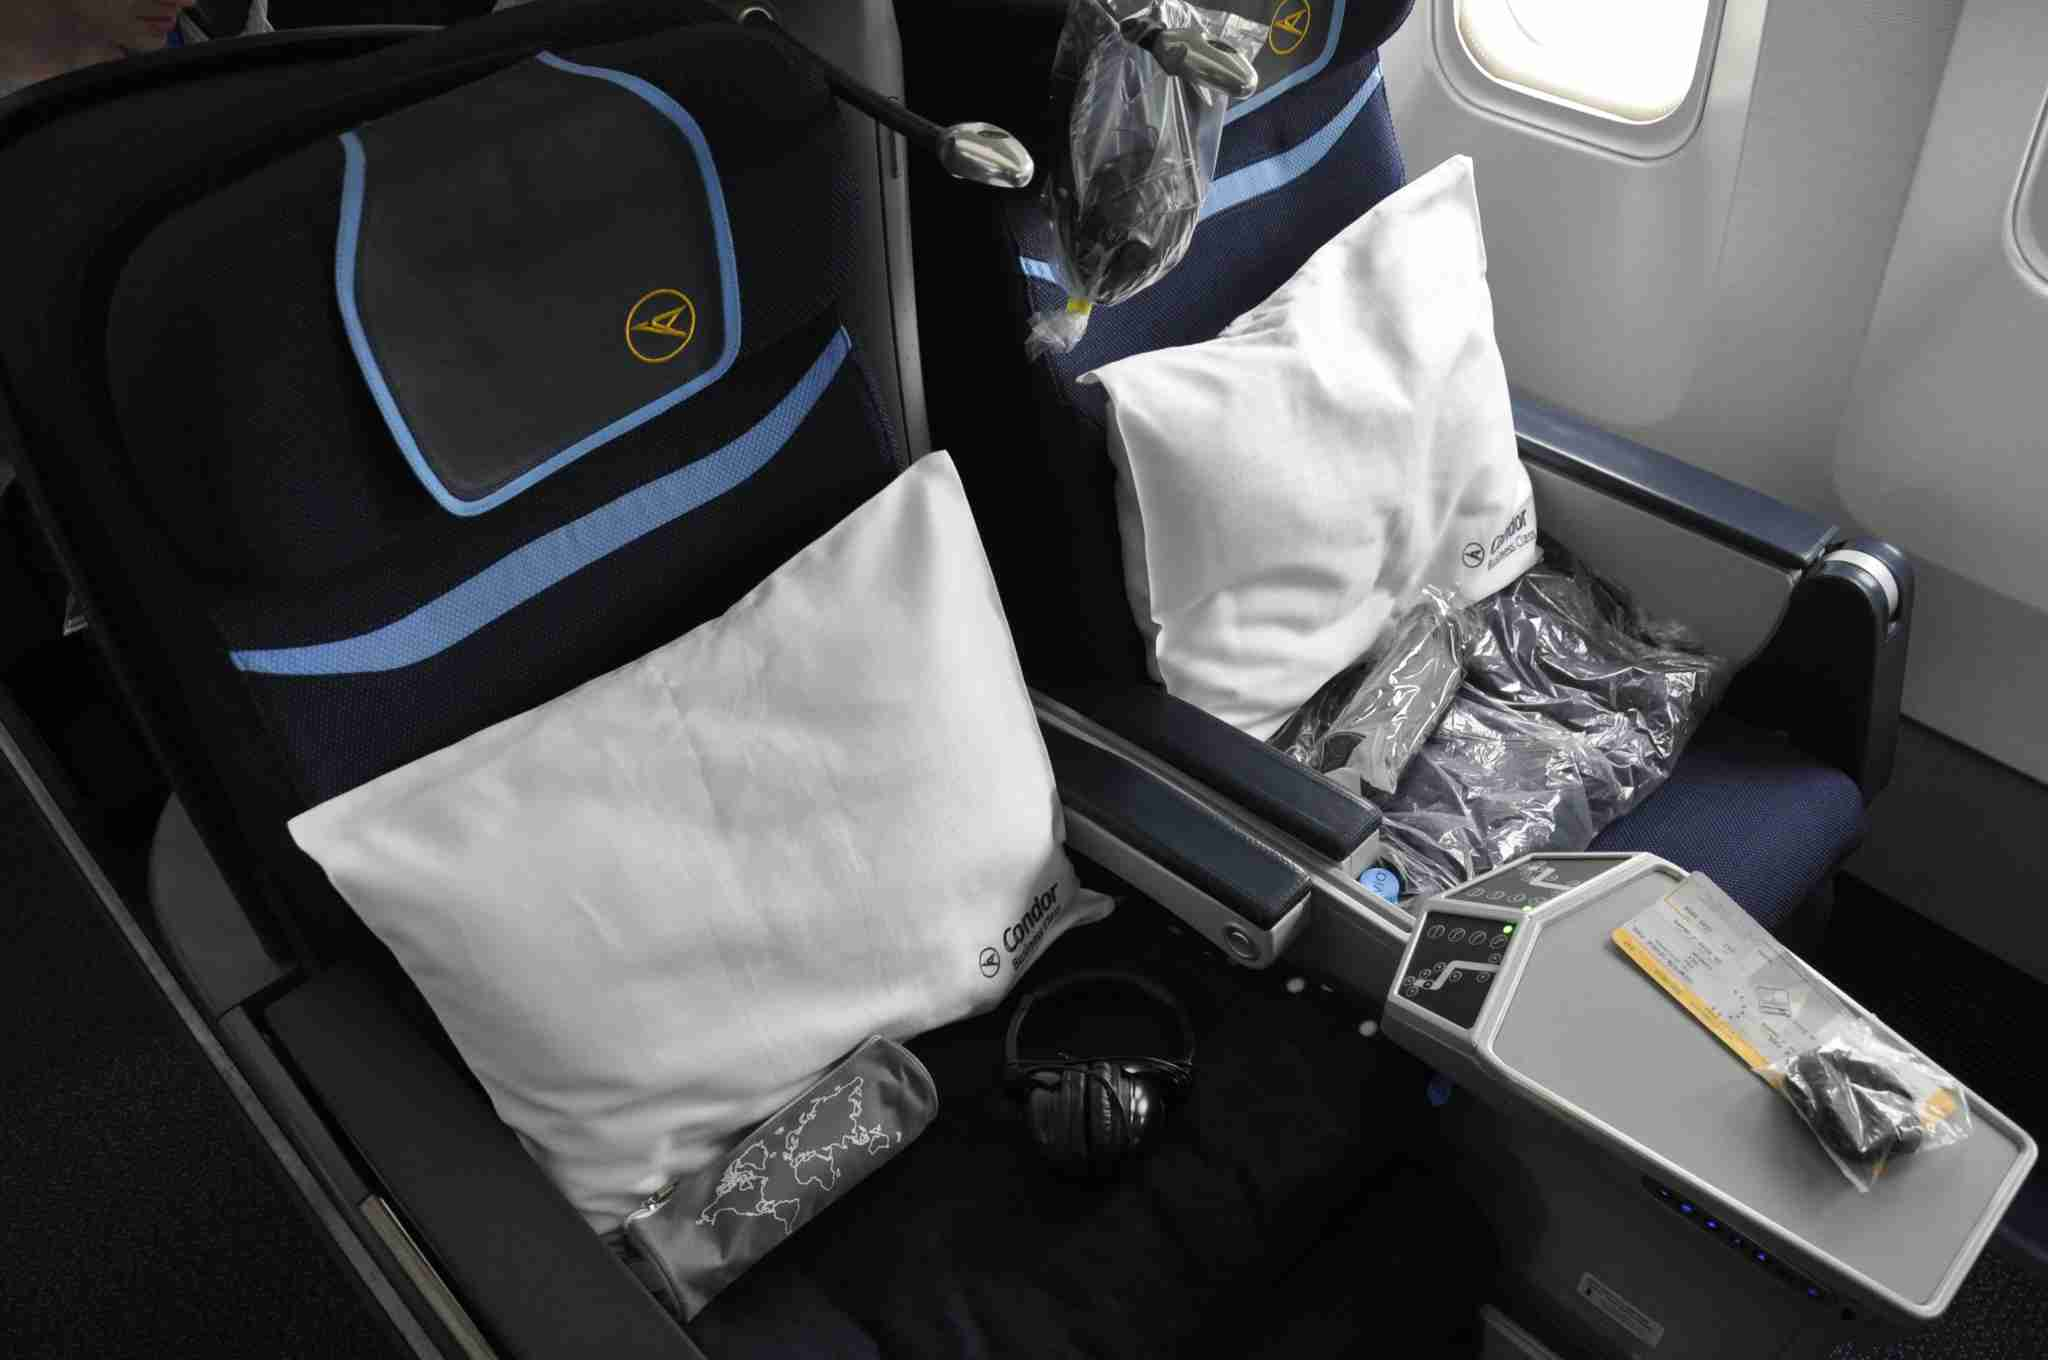 Condor Airlines Business Class seats, aboard their Boeing 767